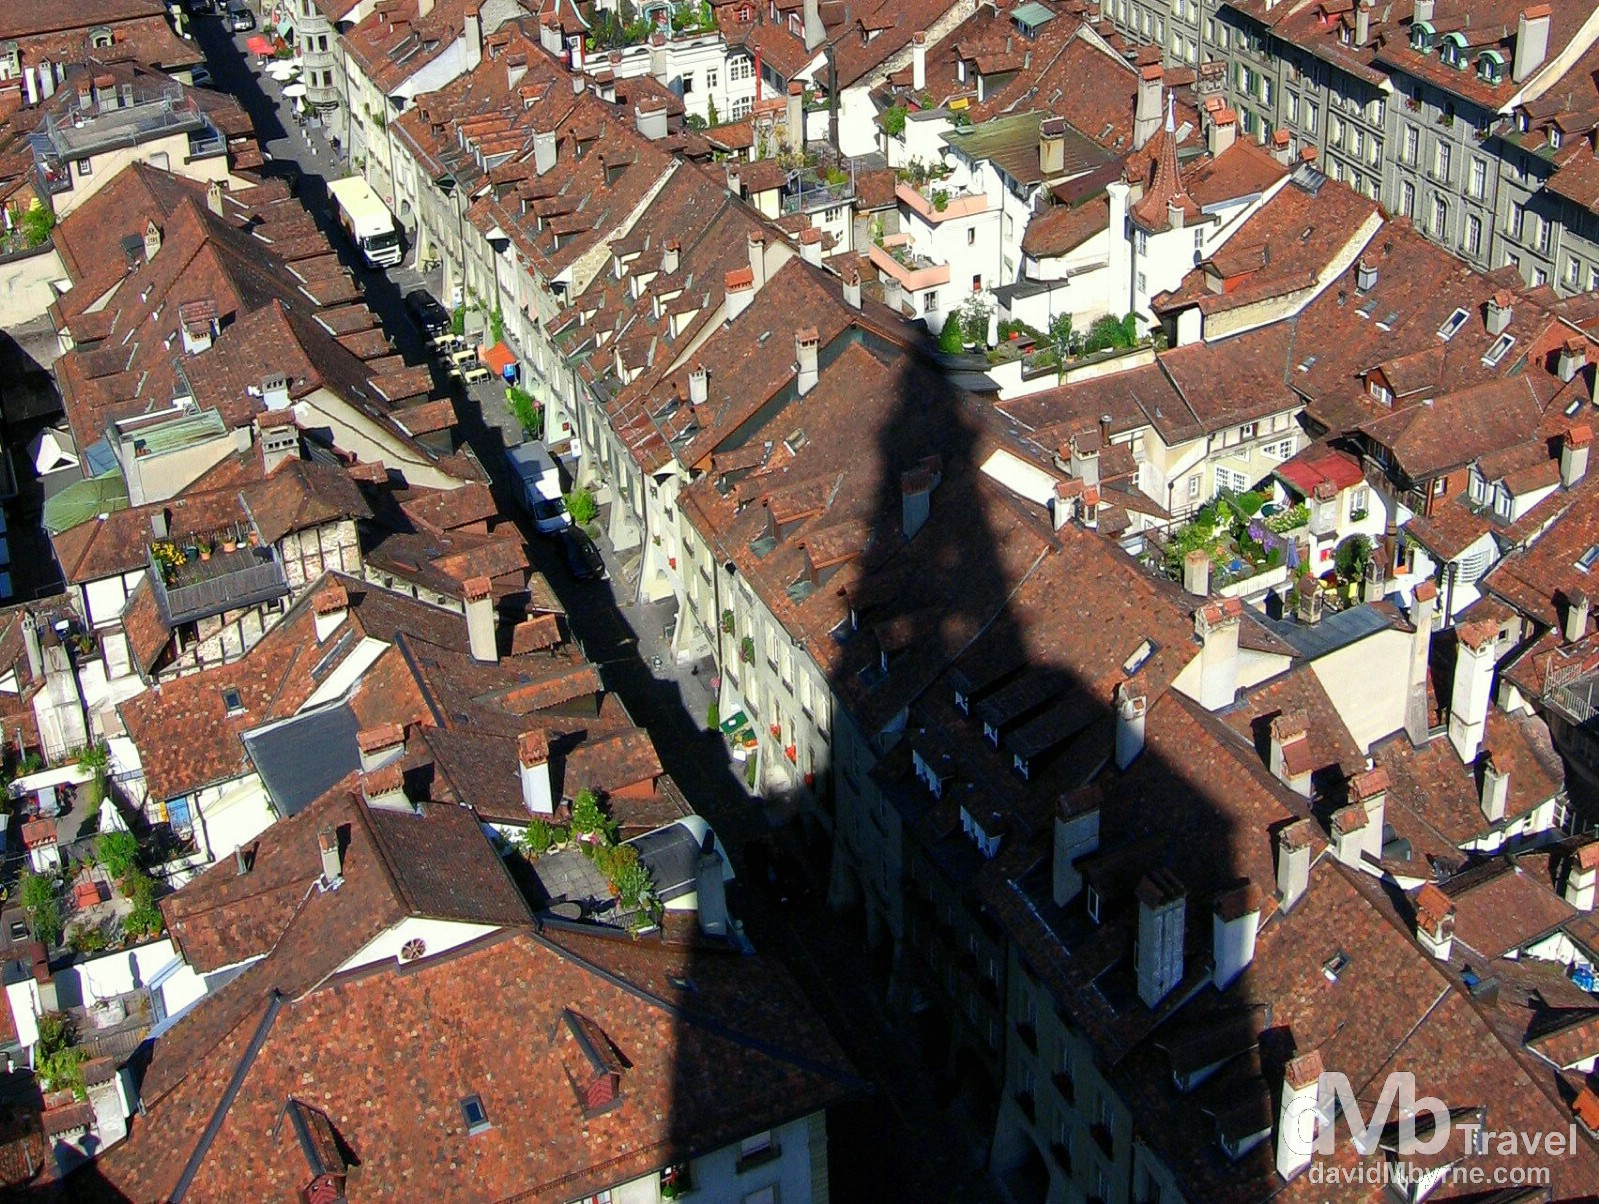 The spire of the late-Gothic Cathedral, or Münster, casts a shadow over the roofs of Old Town in Bern, Switzerland. August 24th, 2007.